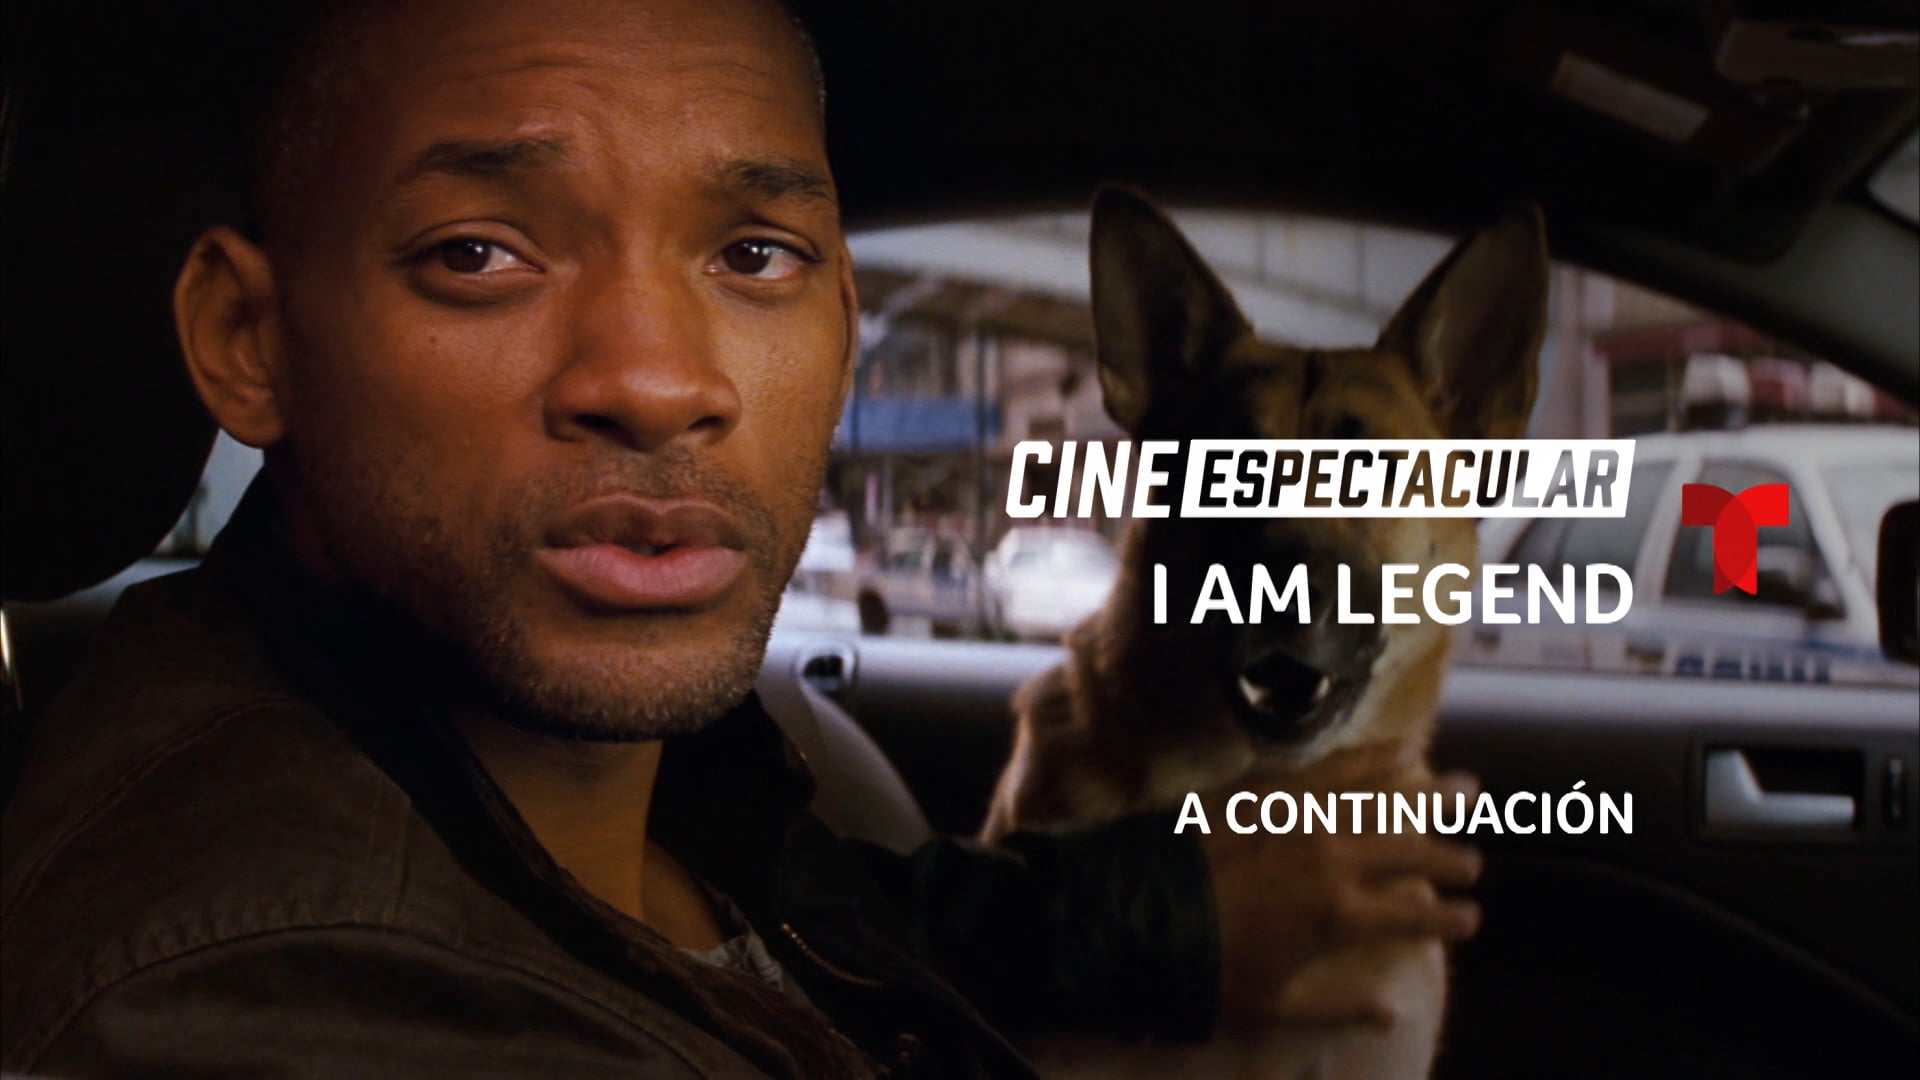 CINE ESPECTACULAR: I AM LEGEND – OPEN PROMO